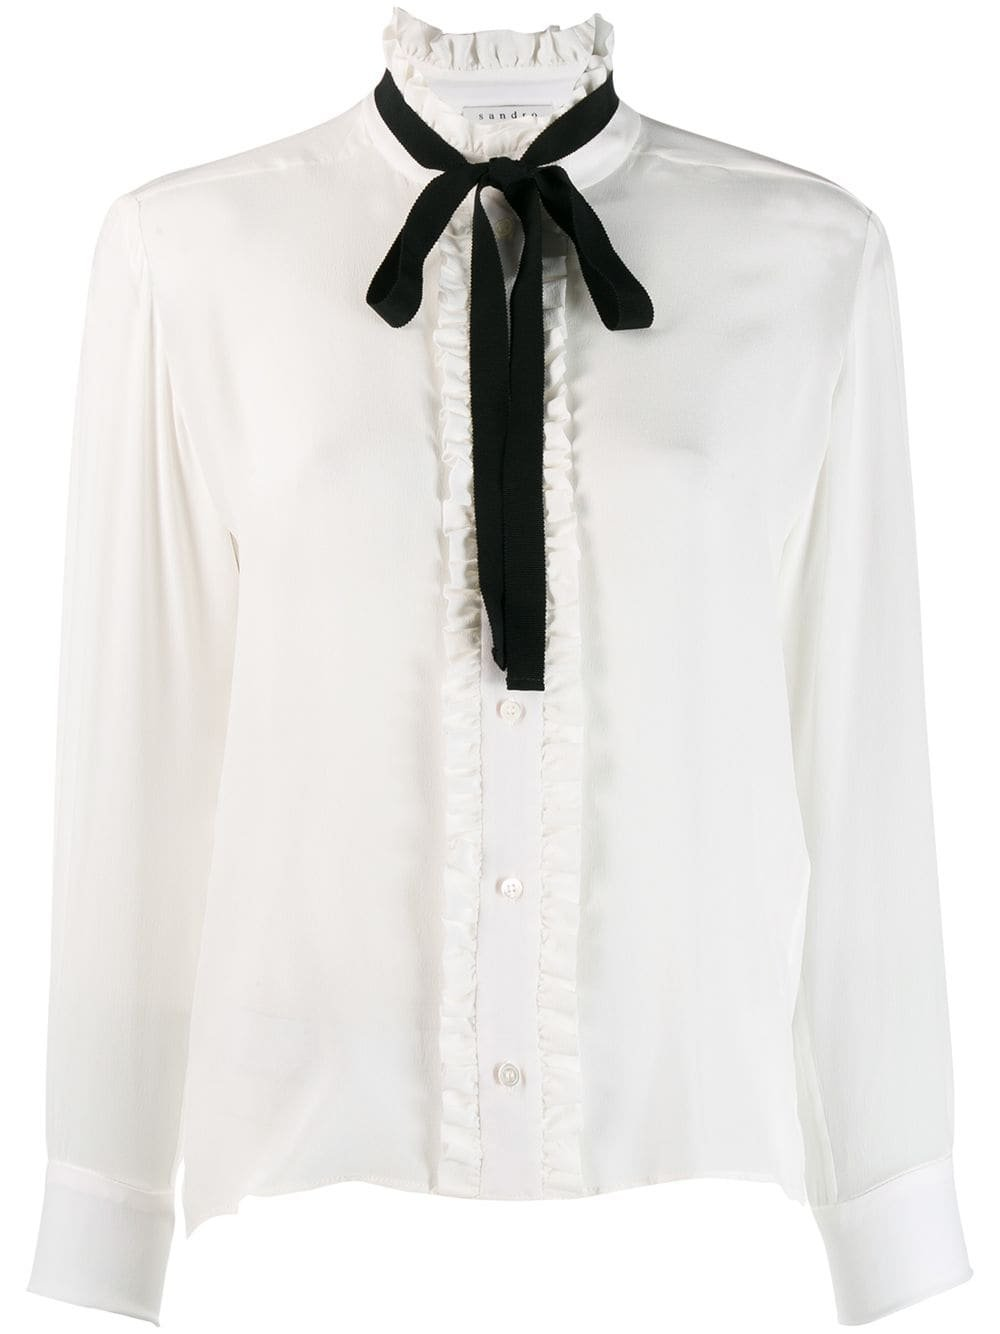 Sandro Paris long-sleeved bow blouse $340 - Buy Online - Mobile Friendly, Fast Delivery, Price